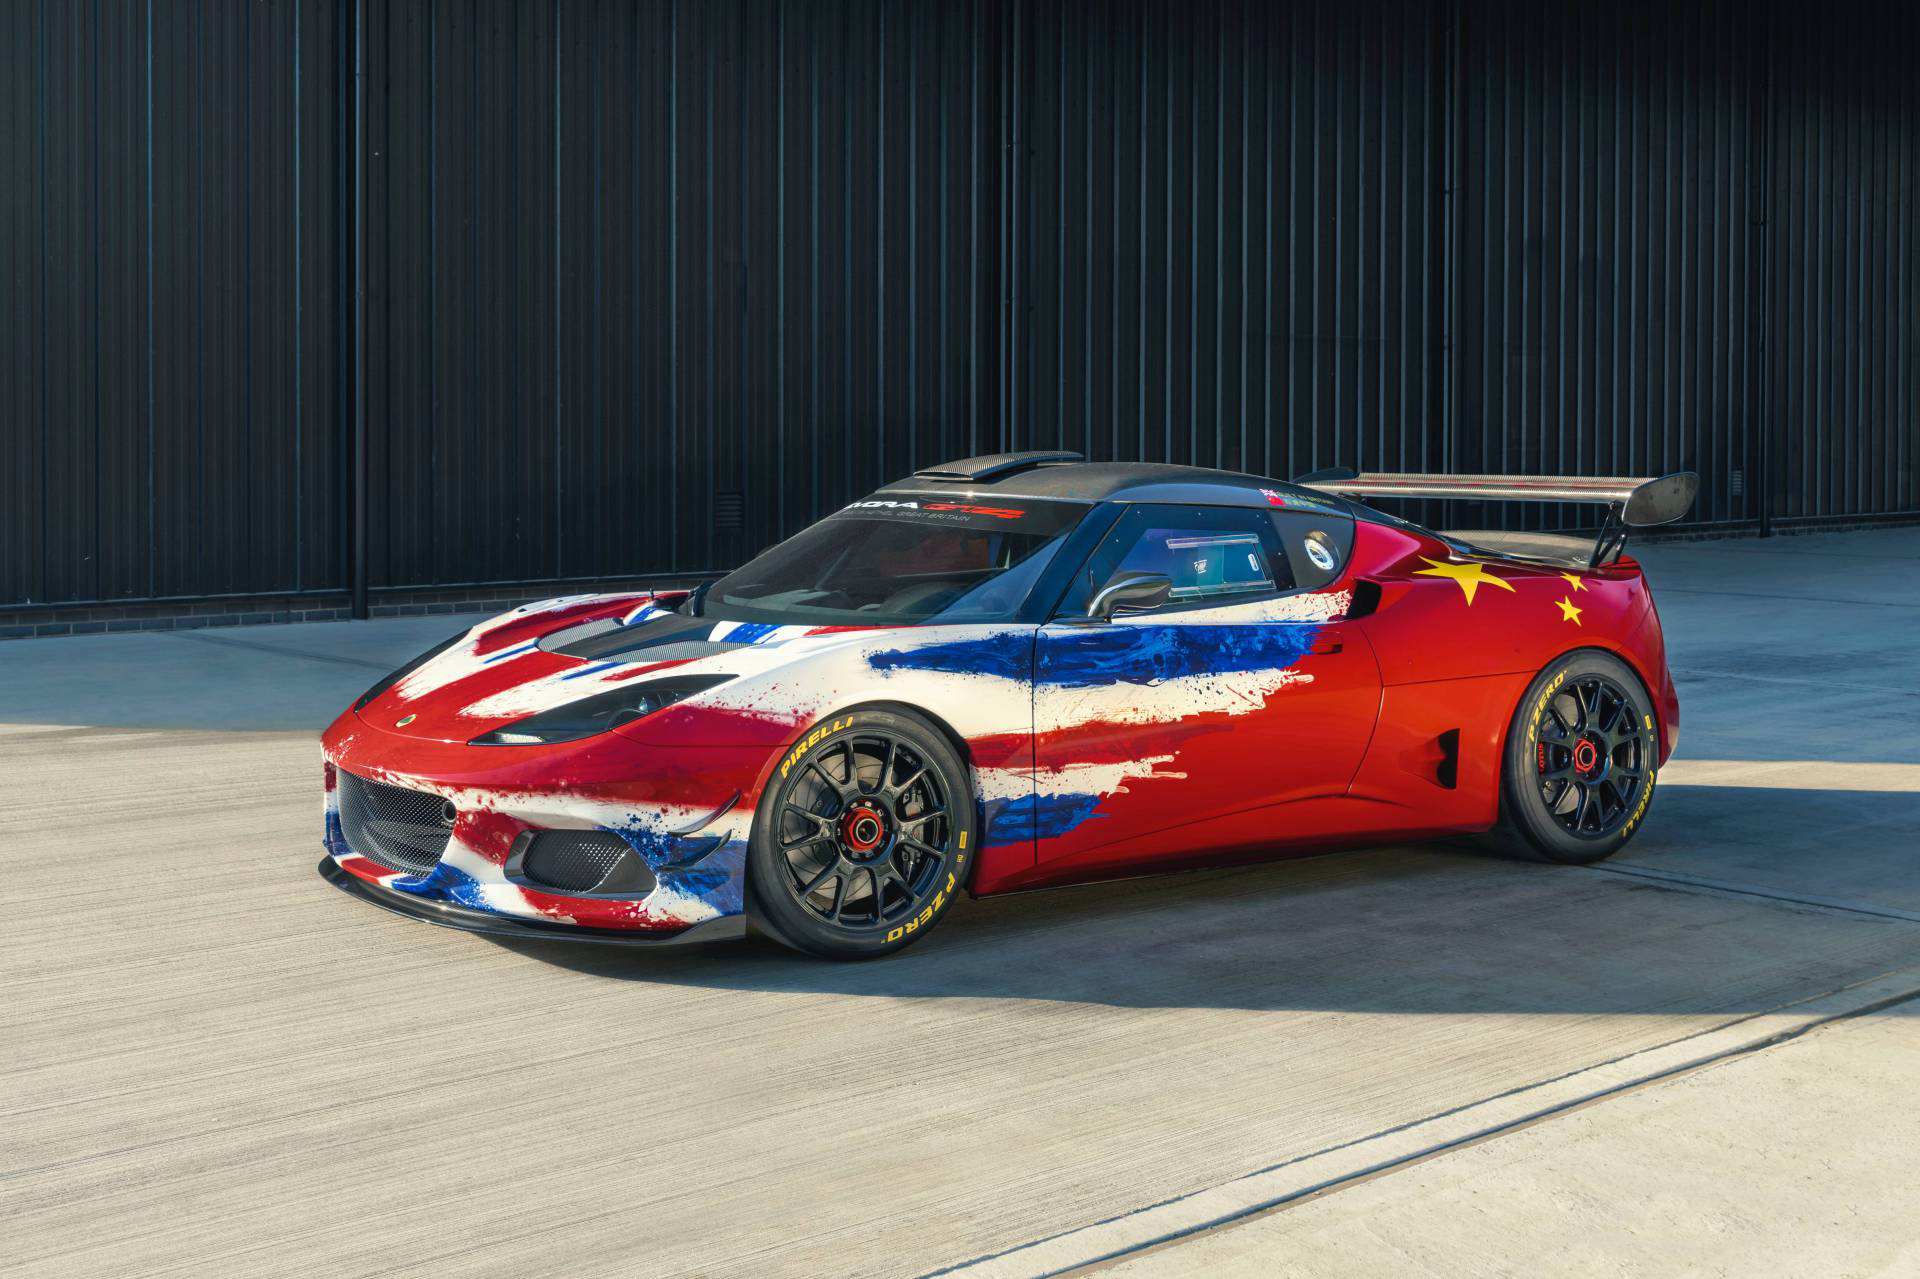 Lotus Evora Gt4 Concept Is The Updated 2020 Race Car Carmojo The Evora Gt4 Concept Features A Unique Livery Combining Th Track Car Concept Cars Race Cars